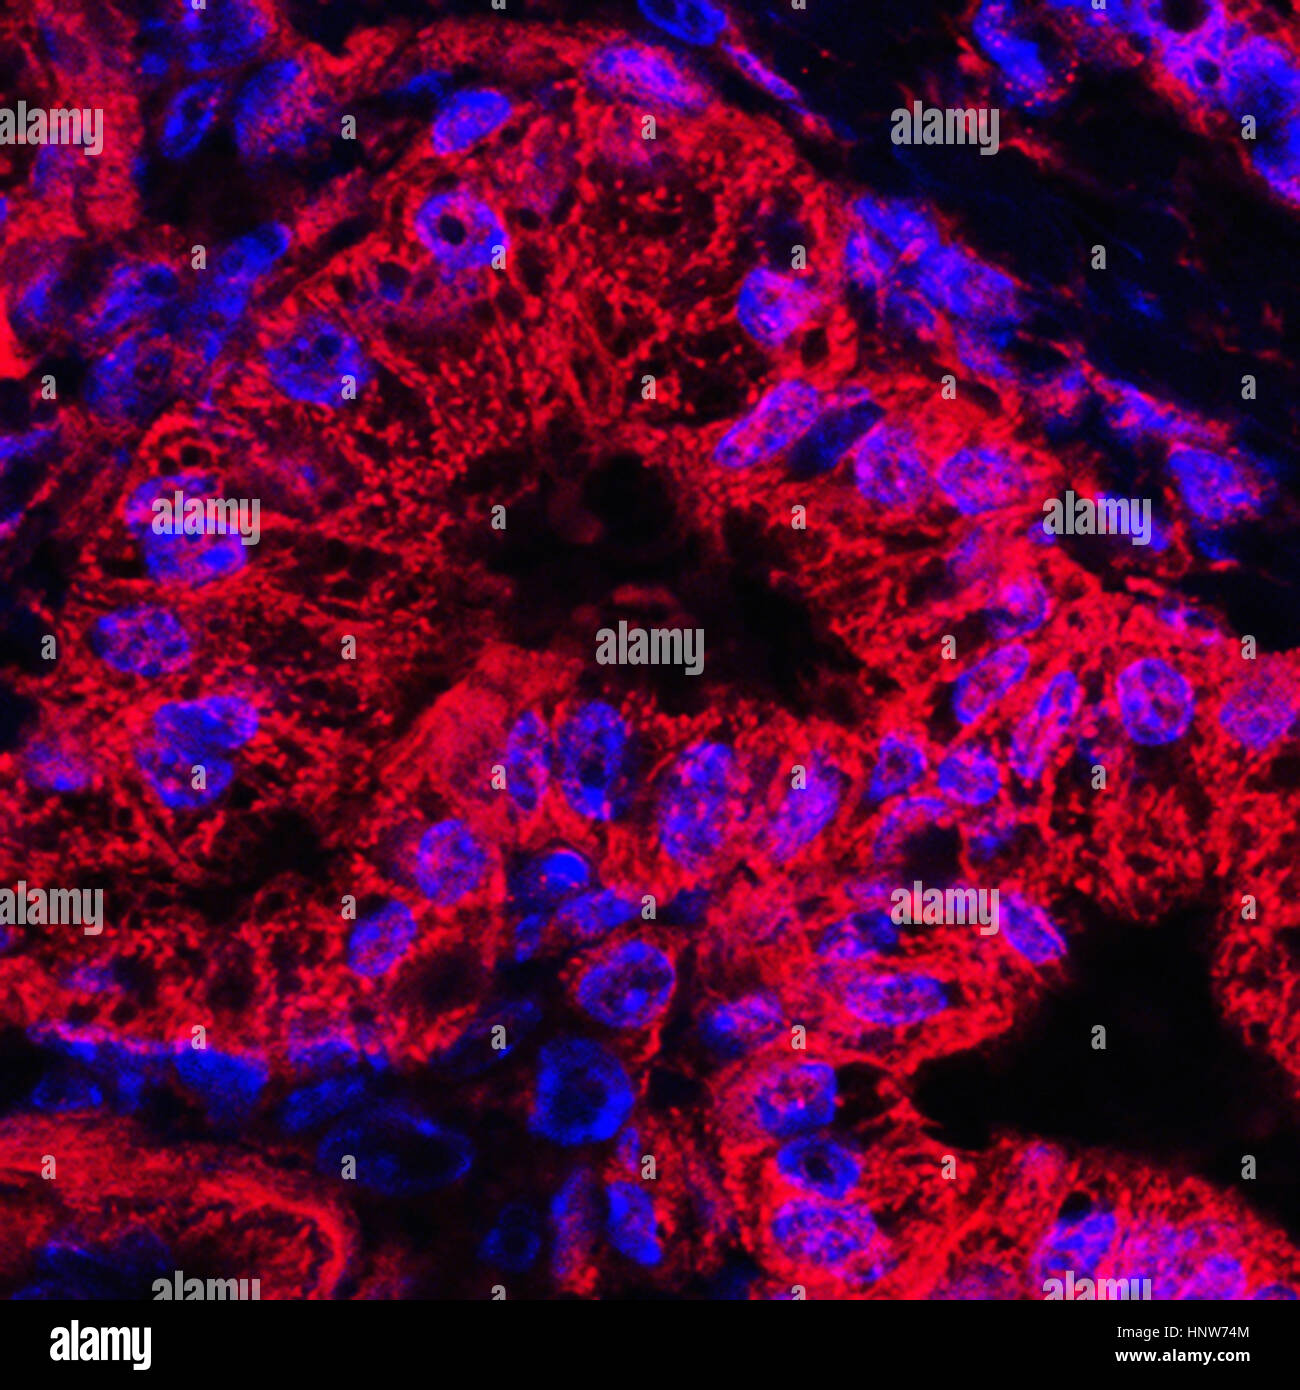 Microscopic image of mitochondrial stained pancreatic cancer cells - Stock Image